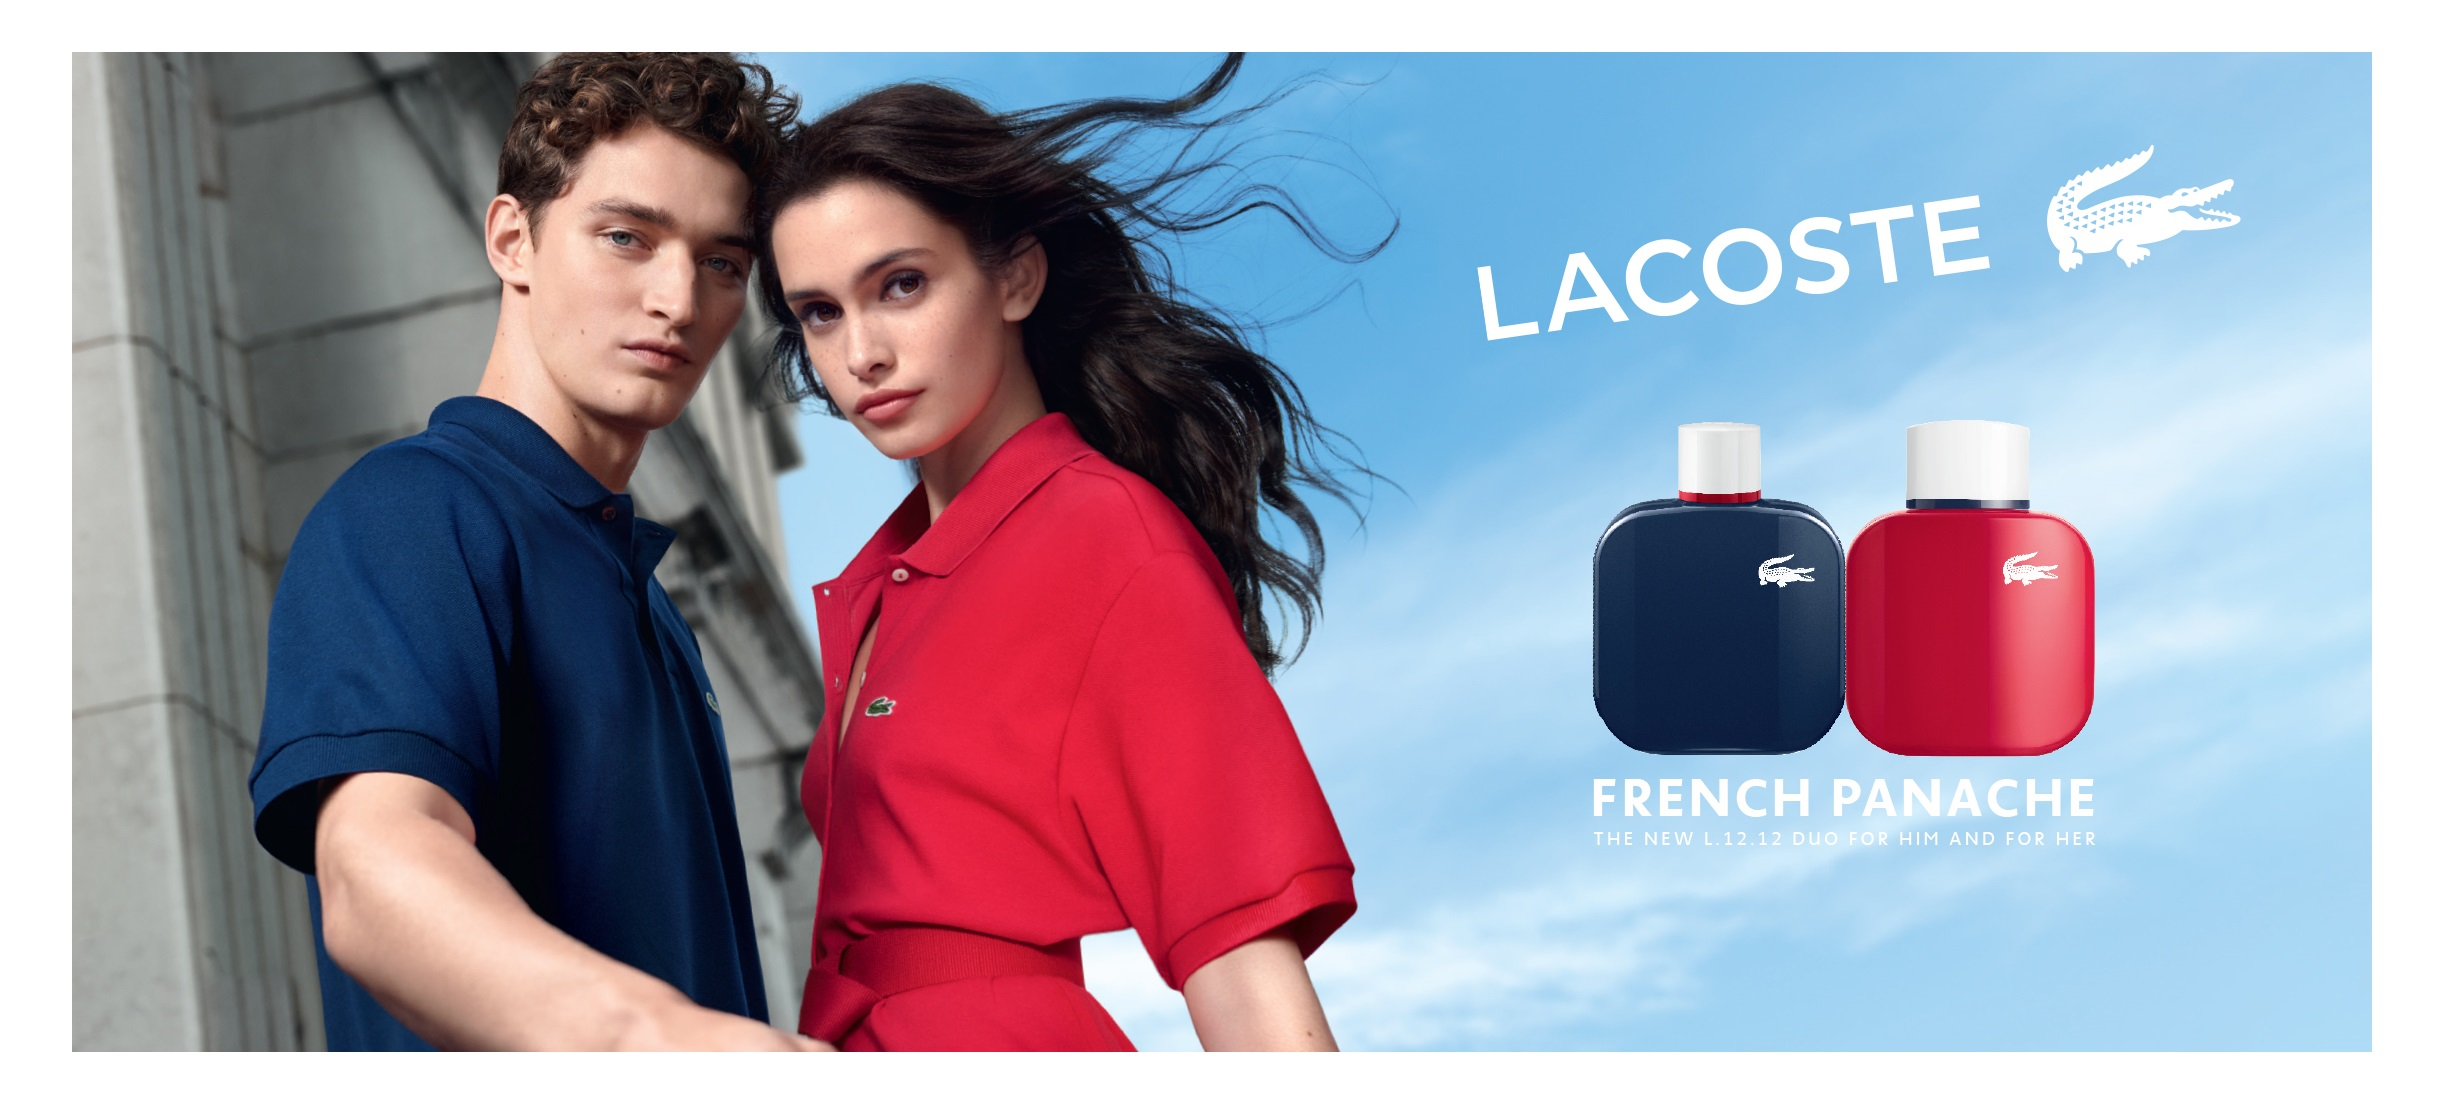 Lacoste, French Panache, parfume